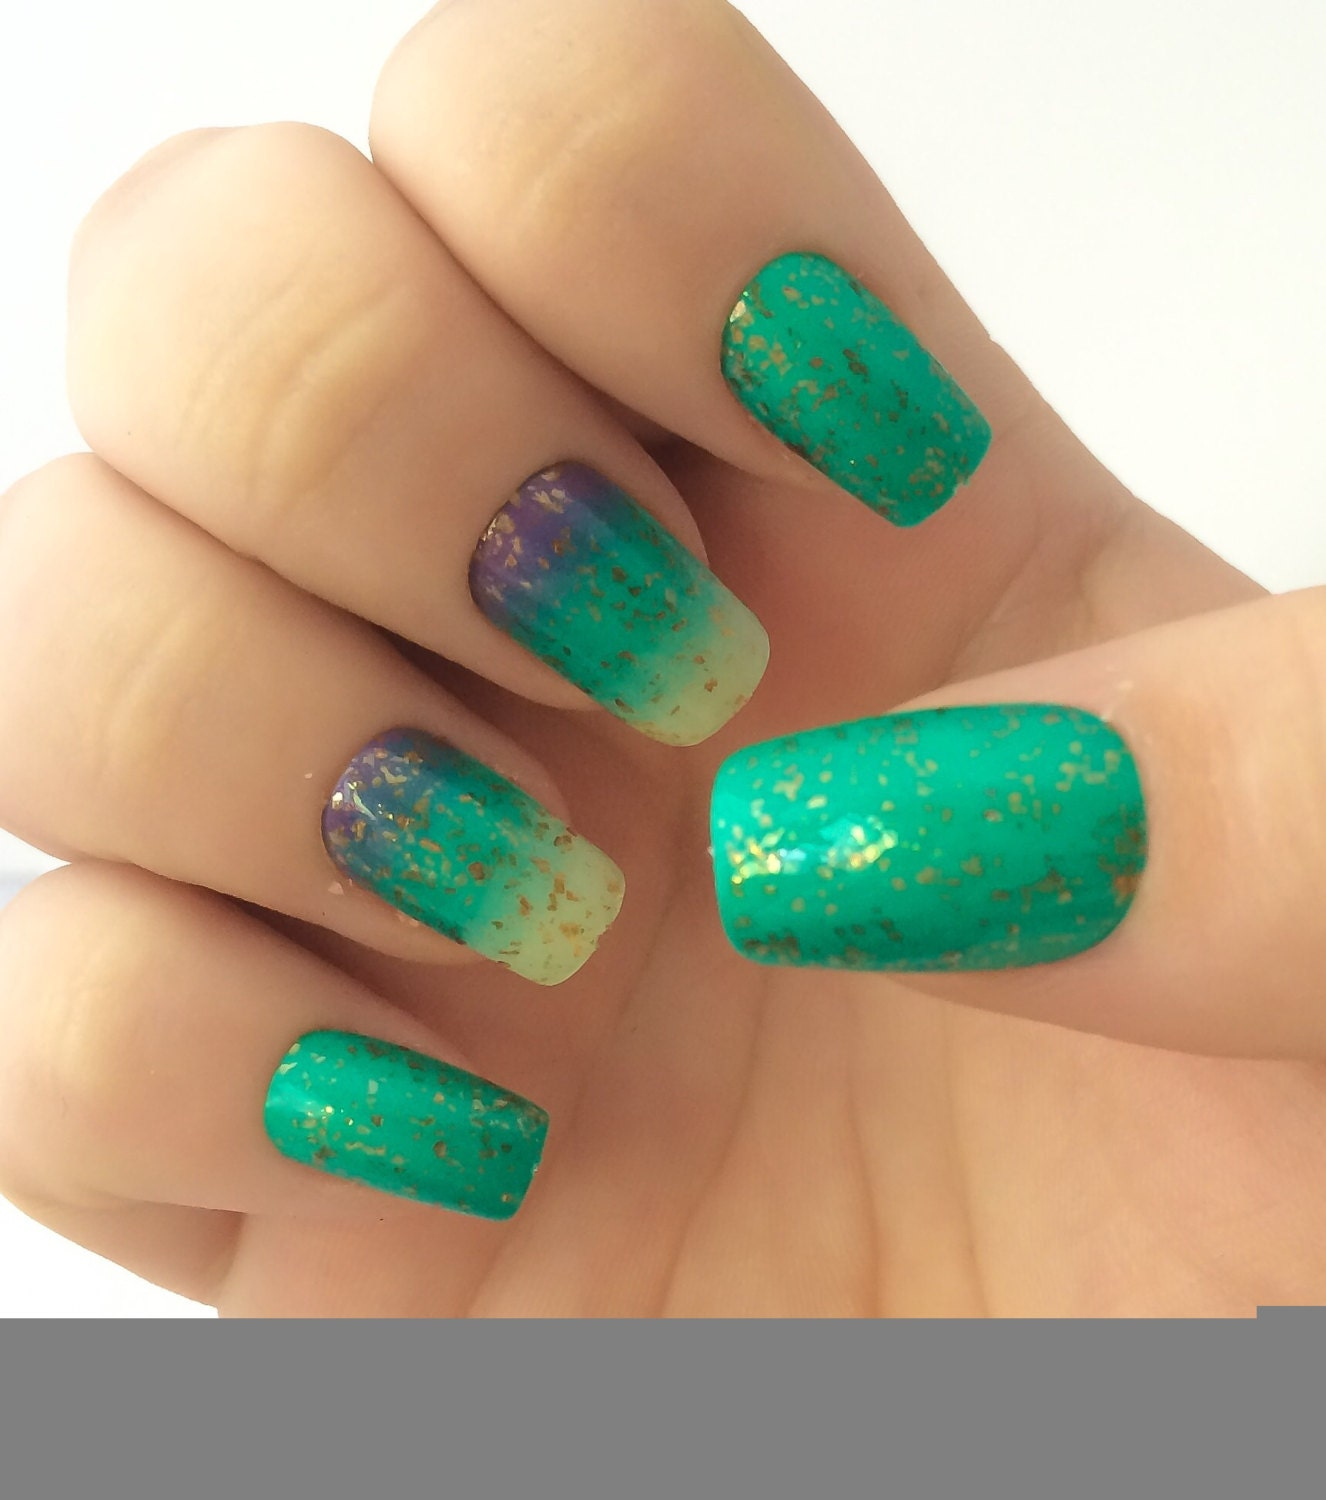 How To Do Ombre Nail Polish: Ombre Fake Nails Green Nail Polish Blue Nail Polish False